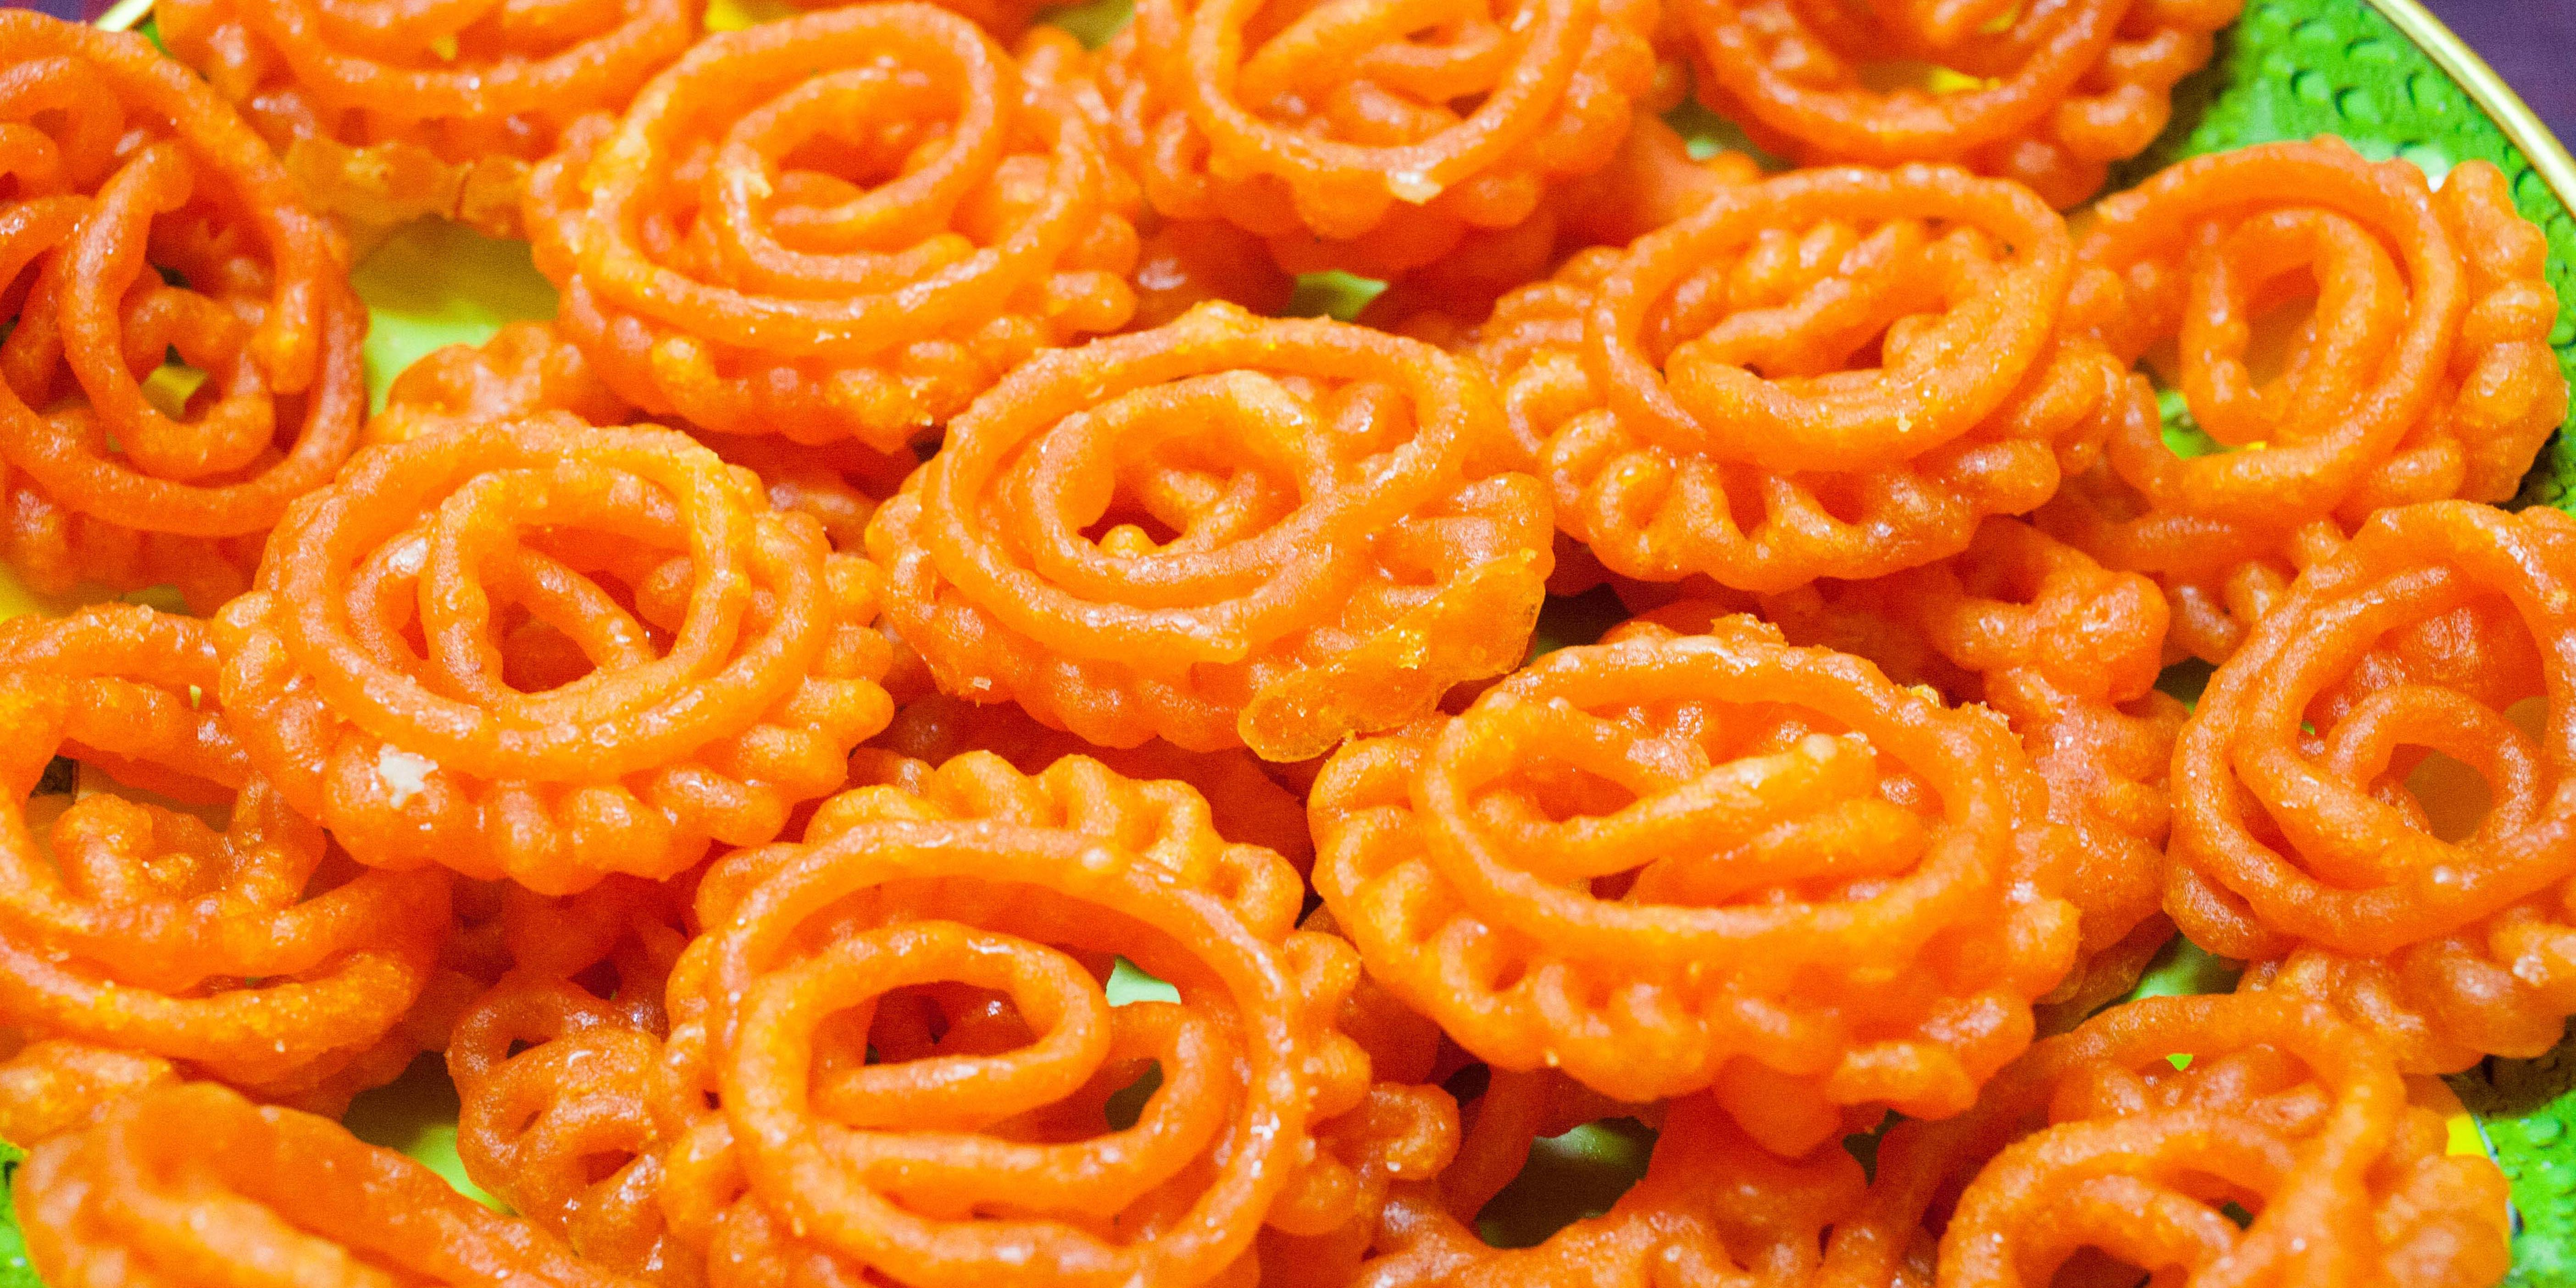 Ganga Sweets Home Delivery Order Online 4th Block